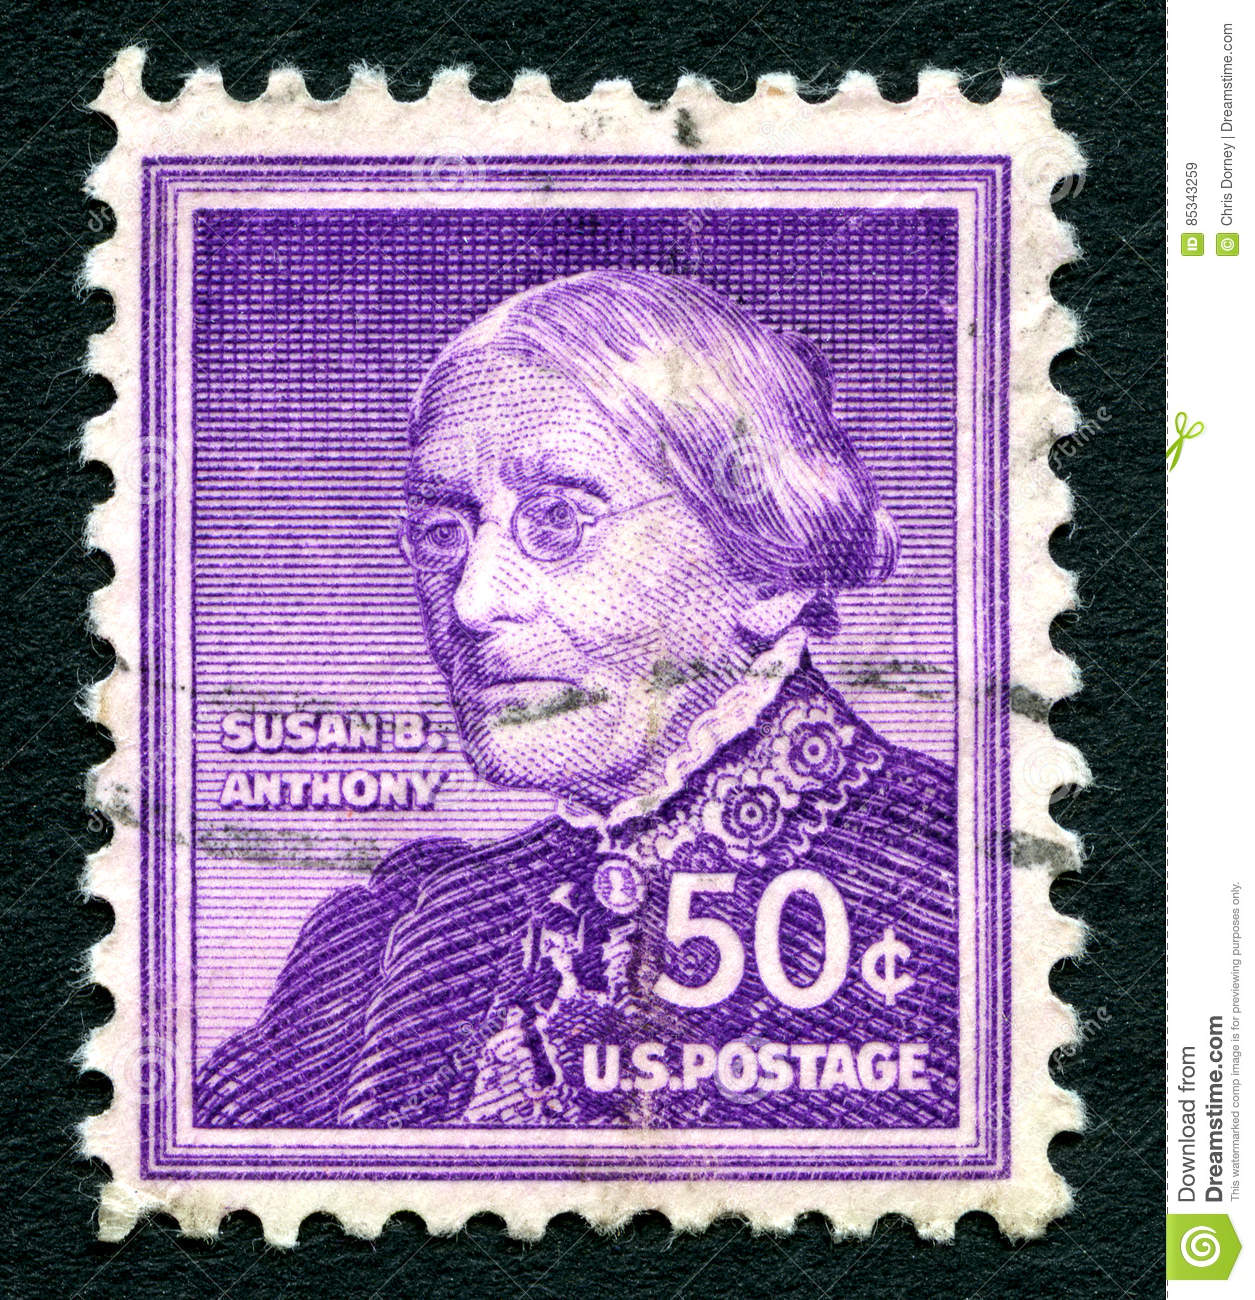 Susan B Anthony US Postage Stamp